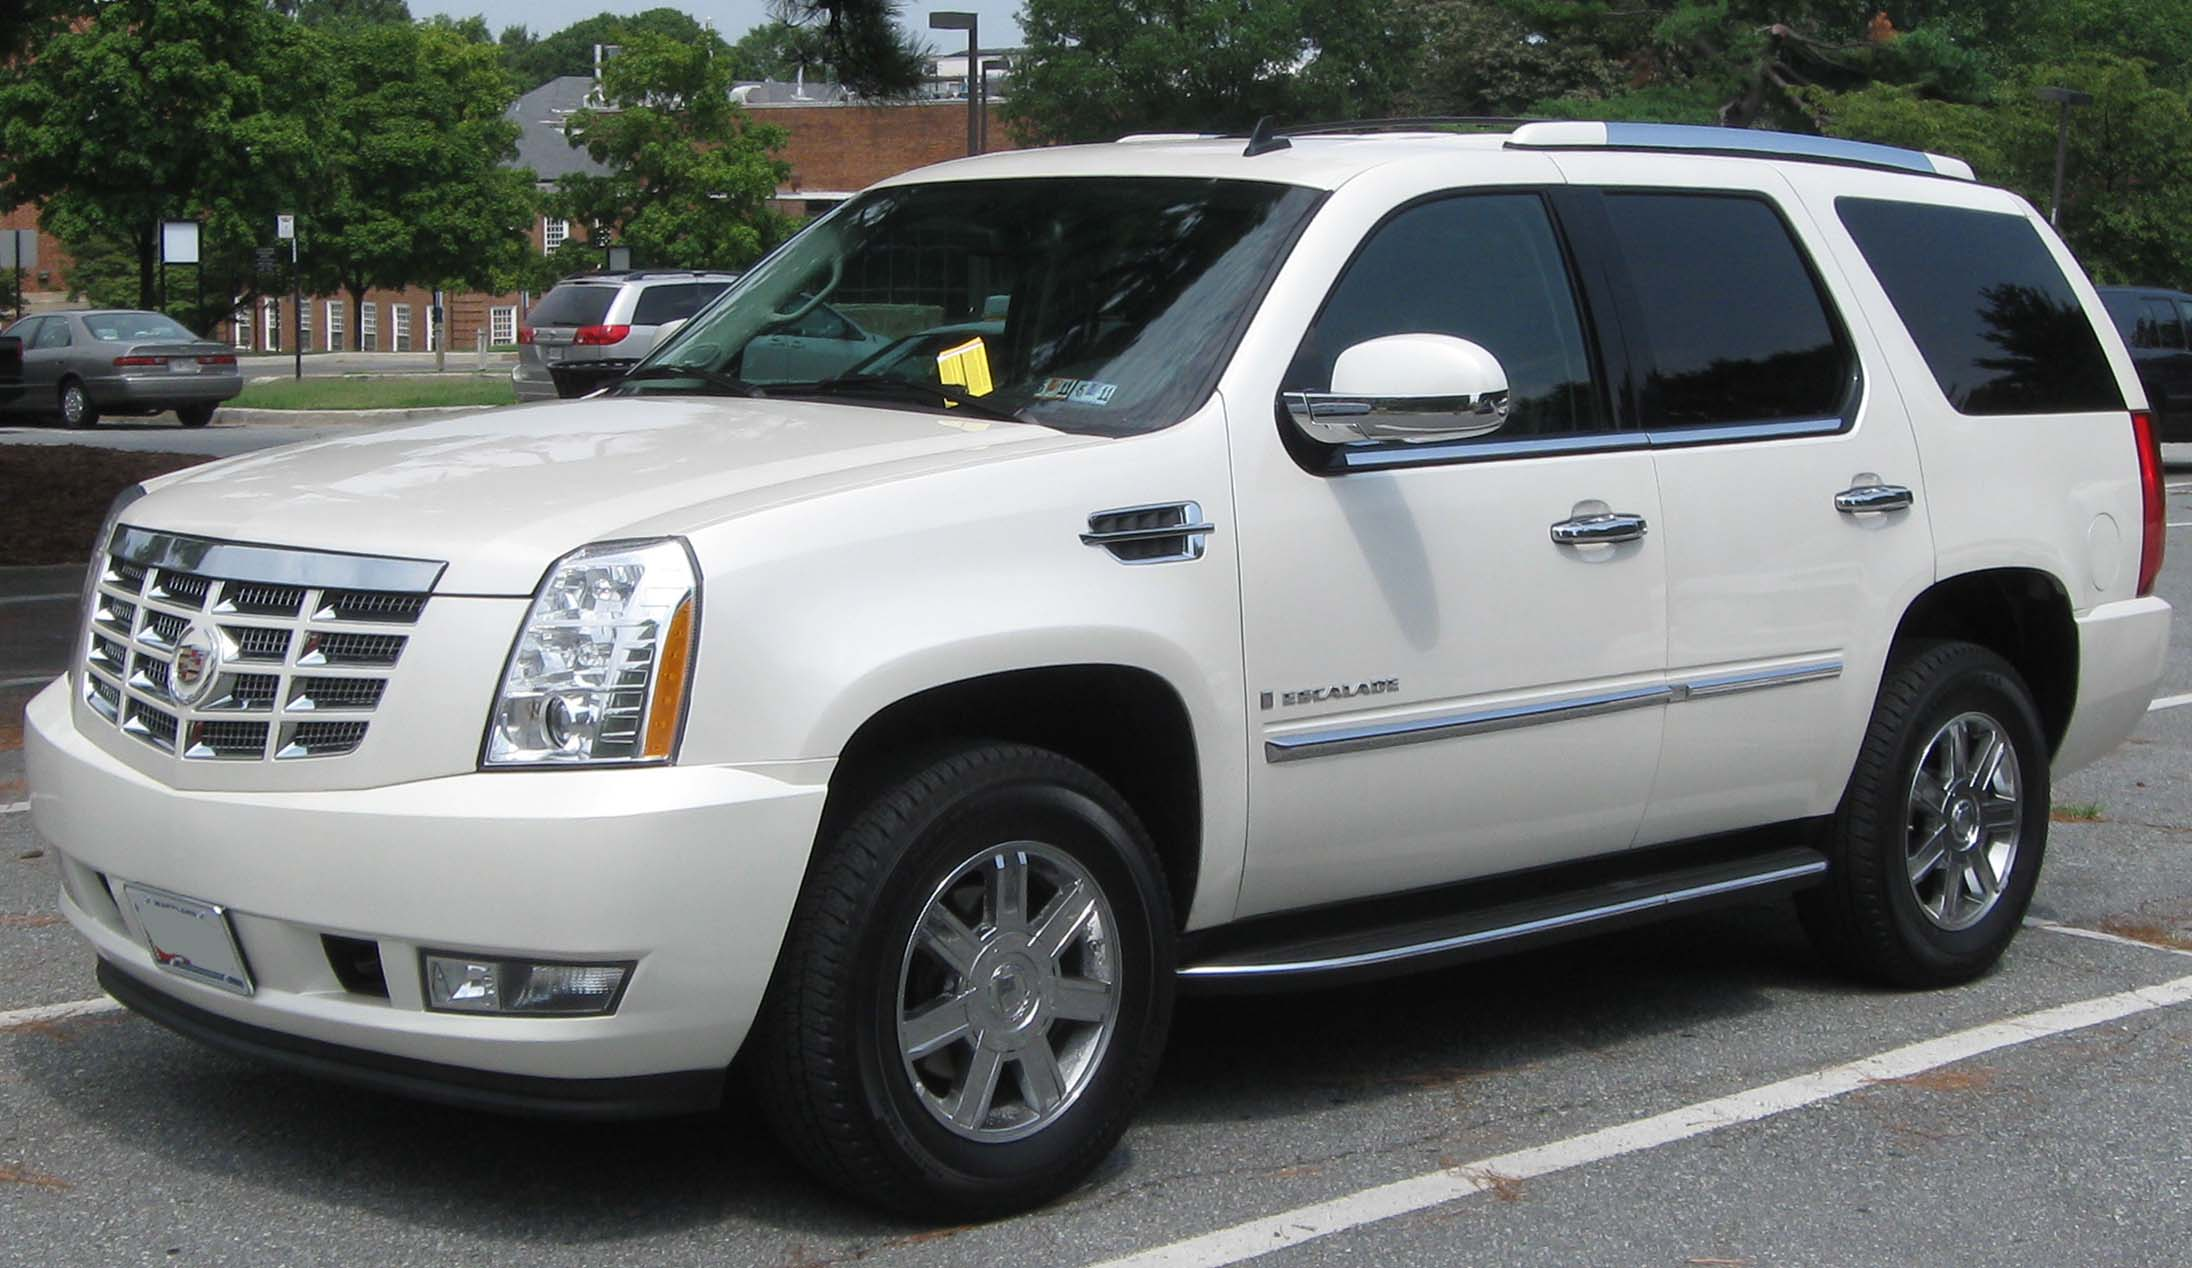 2012 Cadillac Escalade Platinum For Sale >> File:3rd Cadillac Escalade -- 08-16-2010.jpg - Wikimedia ...